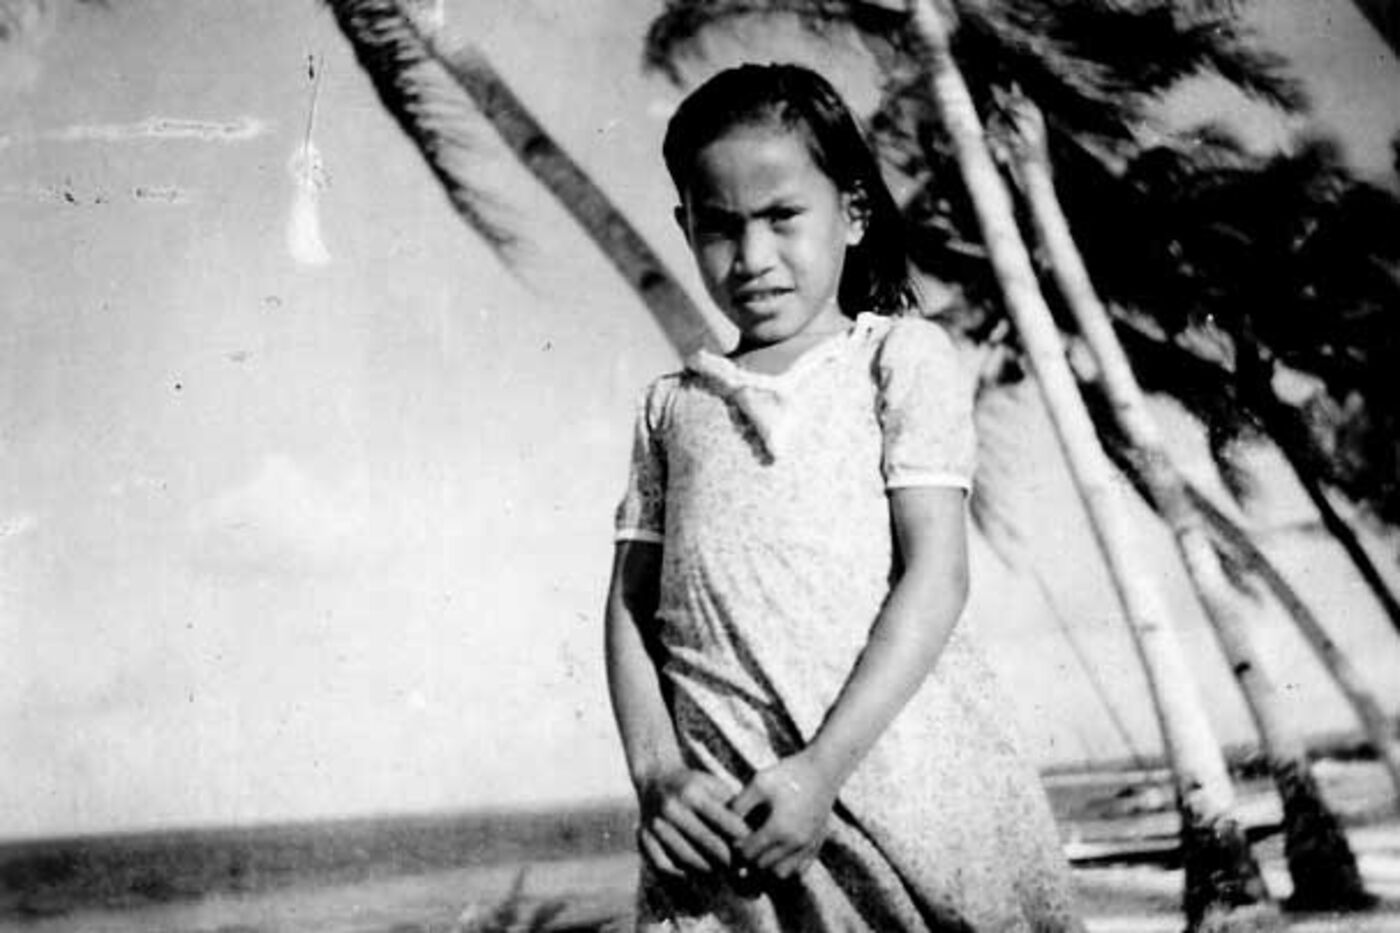 Black-and-white photo of a young girl looking at the camera, with palm trees in the background.